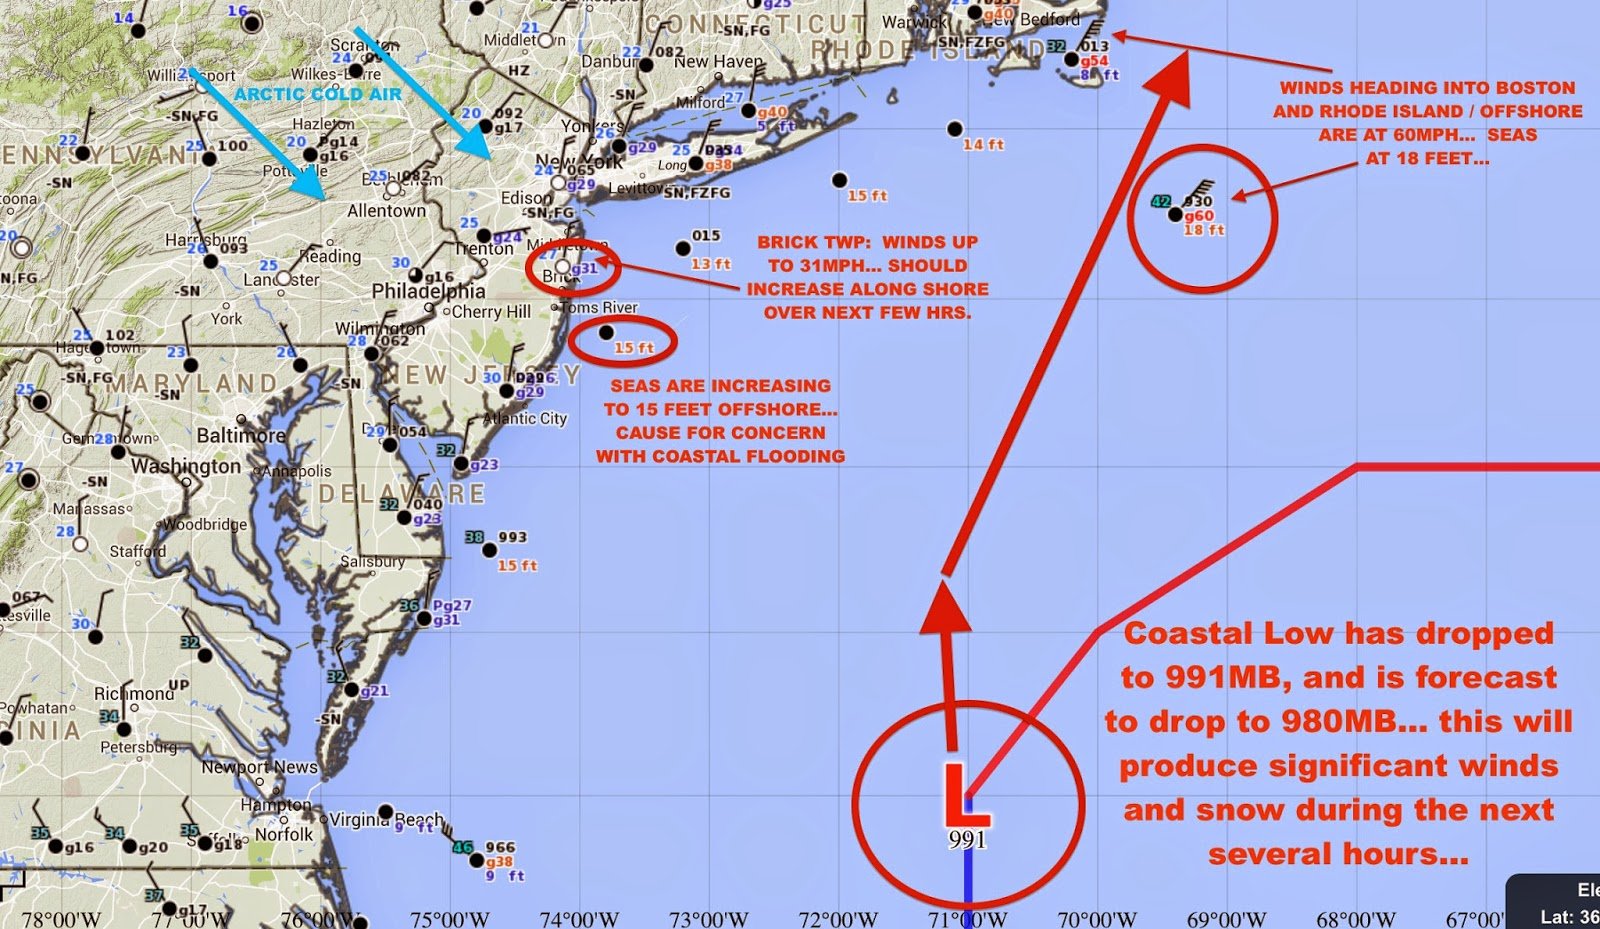 area forecast discussion national weather service mount holly nj 1243 am est tue jan 27 2015 synopsis deep low pressure east of new jersey early this